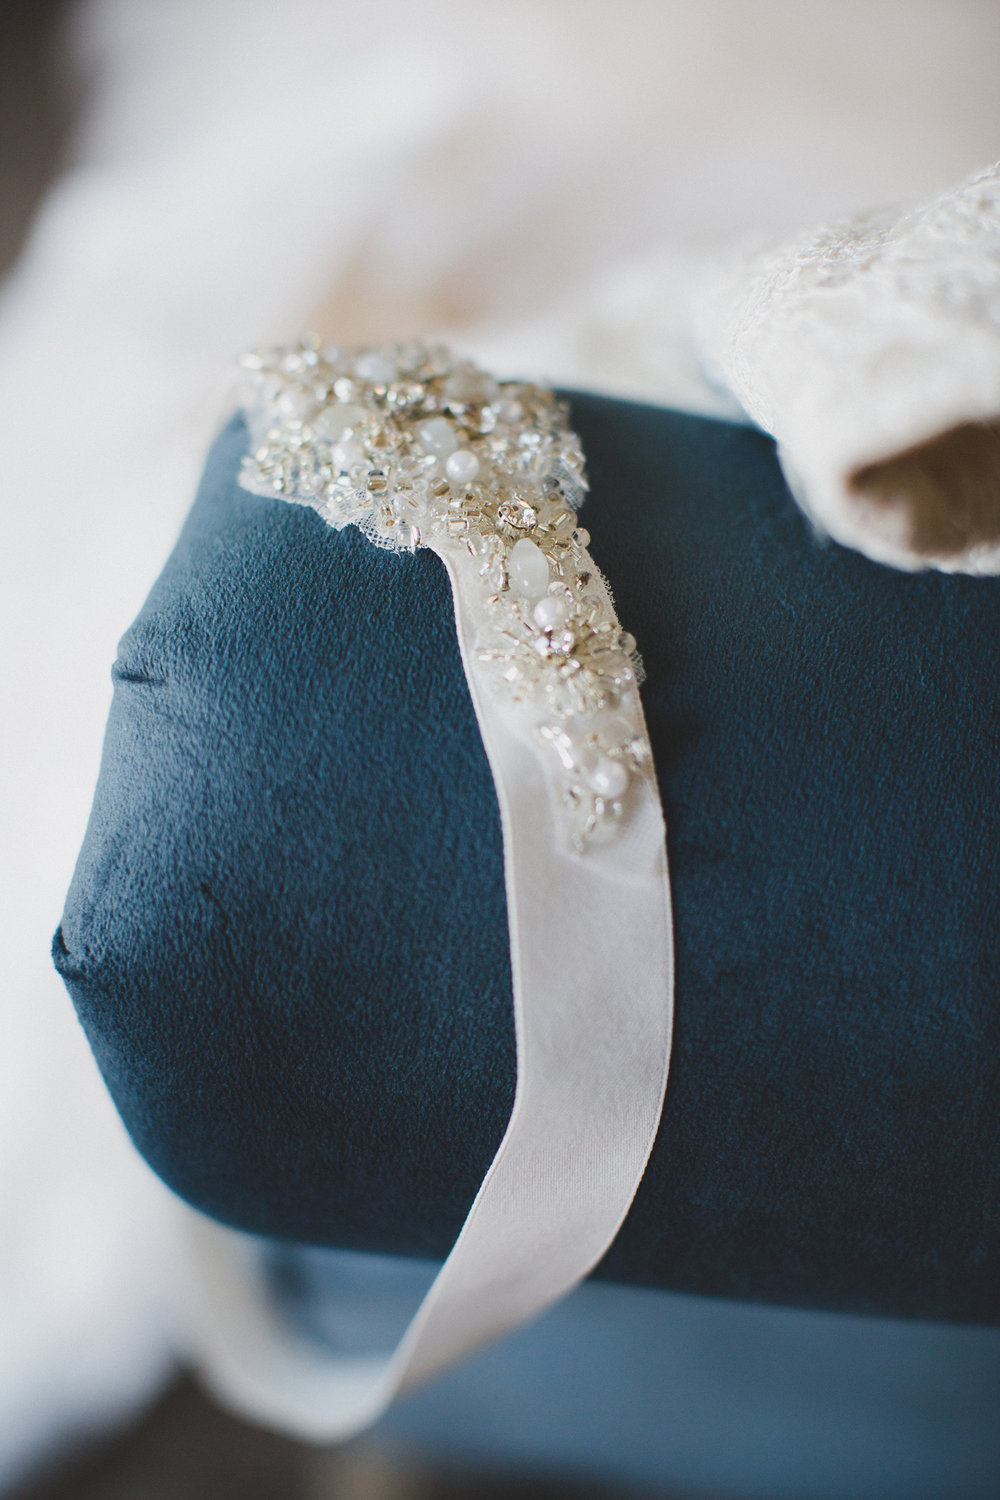 Tri Cities Photographer_Tri Cities Wedding Photographer_Jordan Edens Photography_My anniversary_Wedding dress_Wedding shoes 4